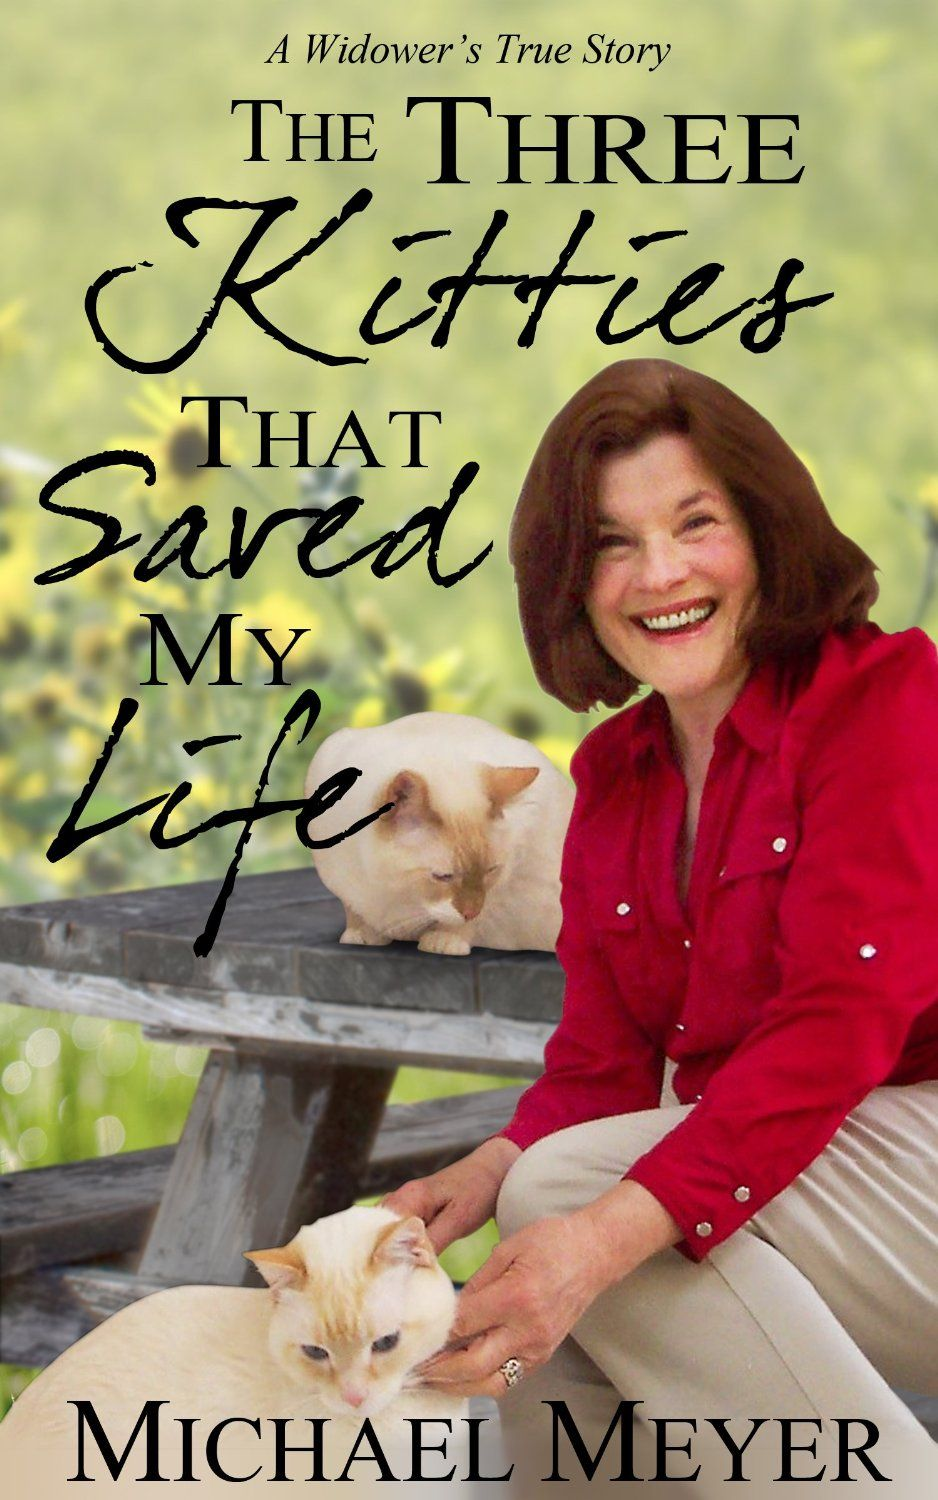 Price drop! 4.5 Stars $0,99 The Three Kitties That Saved My Life ~ AN UPLIFTING TRUE STORY OF LOVE http://www.amazon.com/gp/product/B00CGND93E/ref=as_li_tl?ie=UTF8&camp=1789&creative=9325&creativeASIN=B00CGND93E&linkCode=as2&tag=more036-20&linkId=UA2XEY443DLOWLVN … #1 Amazon best seller #cats Sign up and check out all of today's kindle deals & freebies http://mad.ly/signups/89856/join